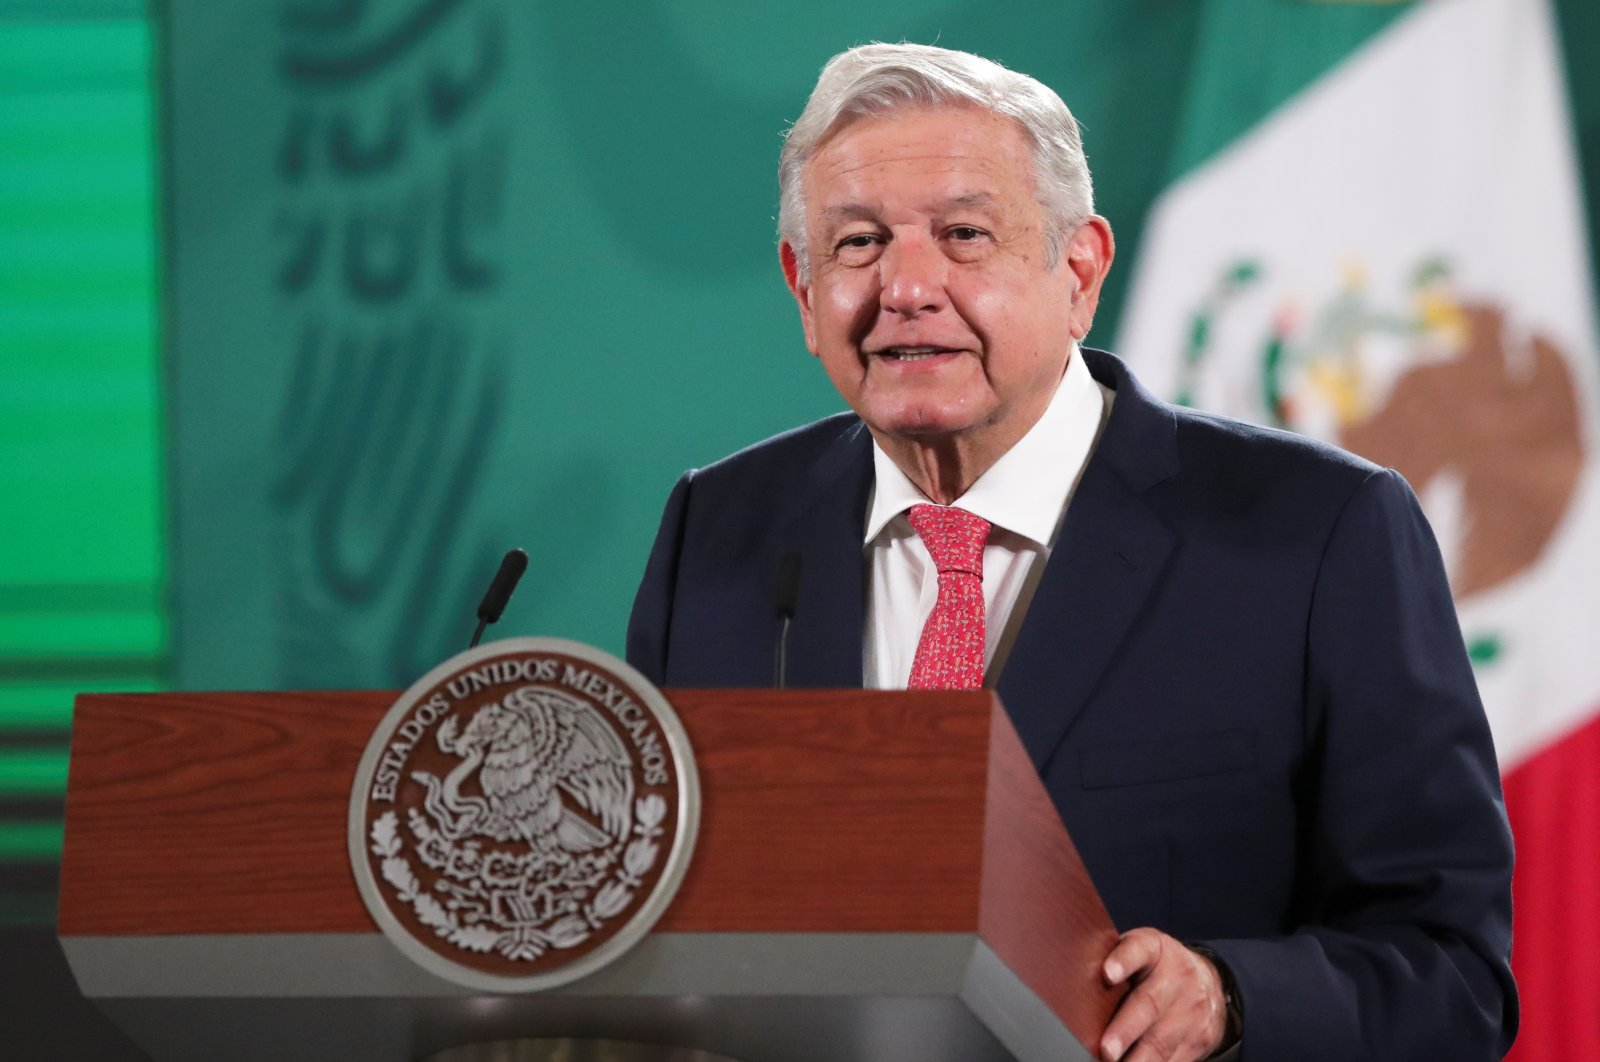 Mexico's President Andres Manuel Lopez Obrador attends a news conference on the results of the midterm election, at the National Palace in Mexico City, Mexico June 7, 2021. (Reuters Photo)